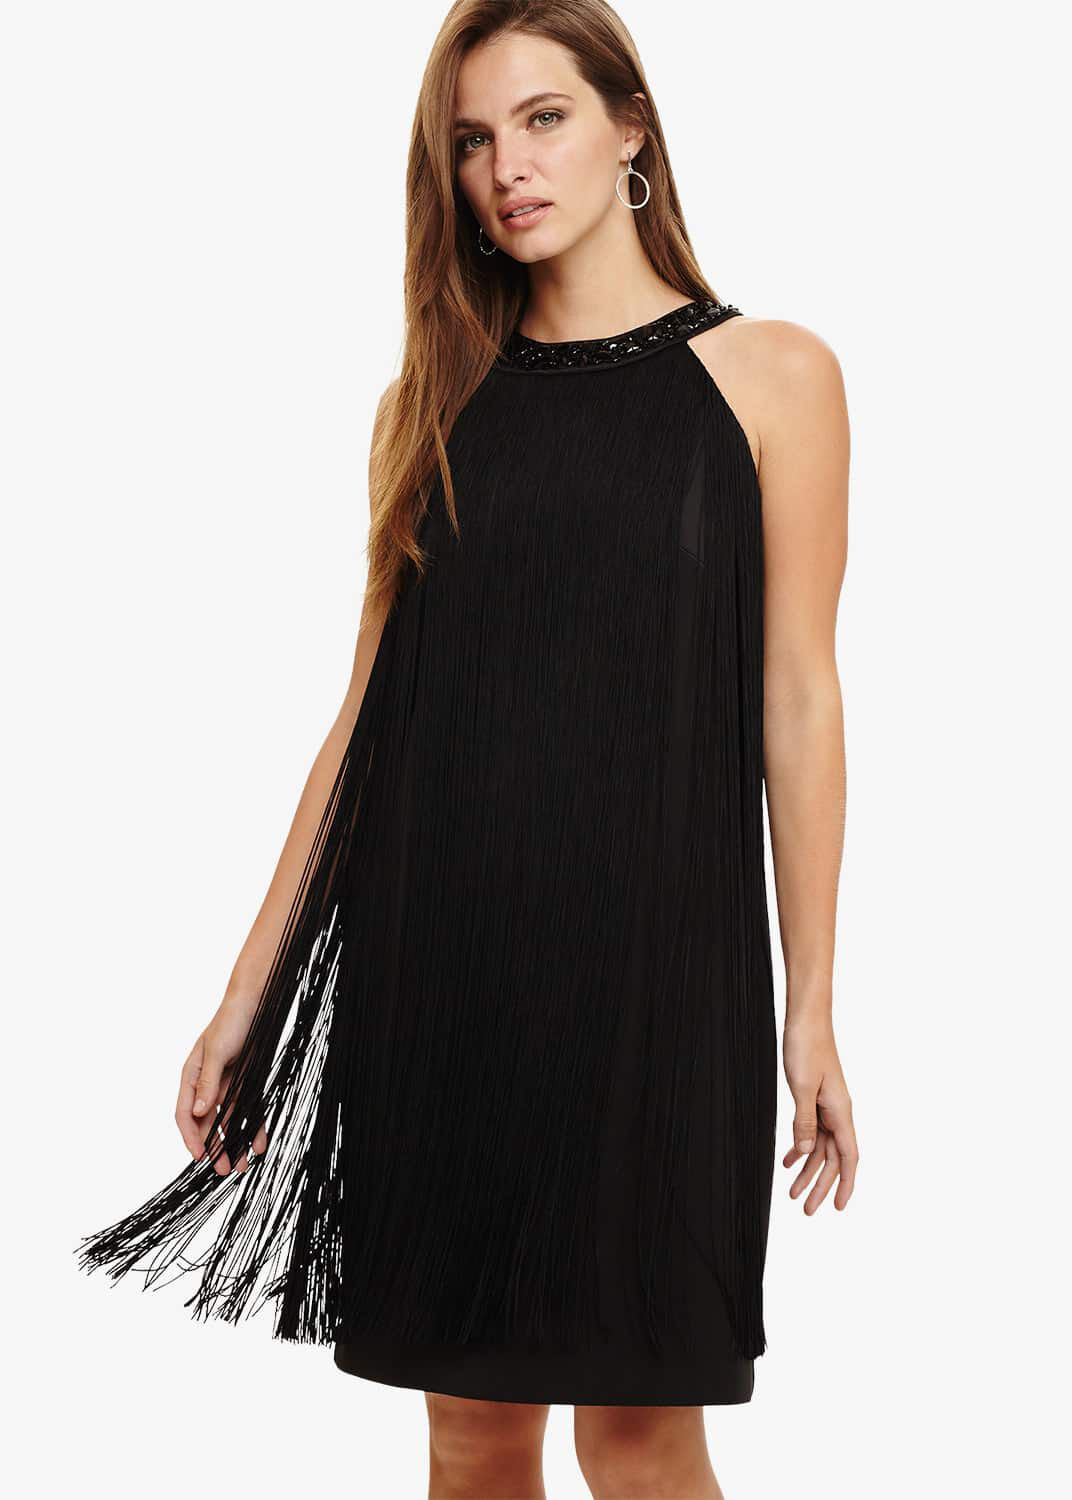 Phase Eight Katie Fringe Dress, Black, Shift